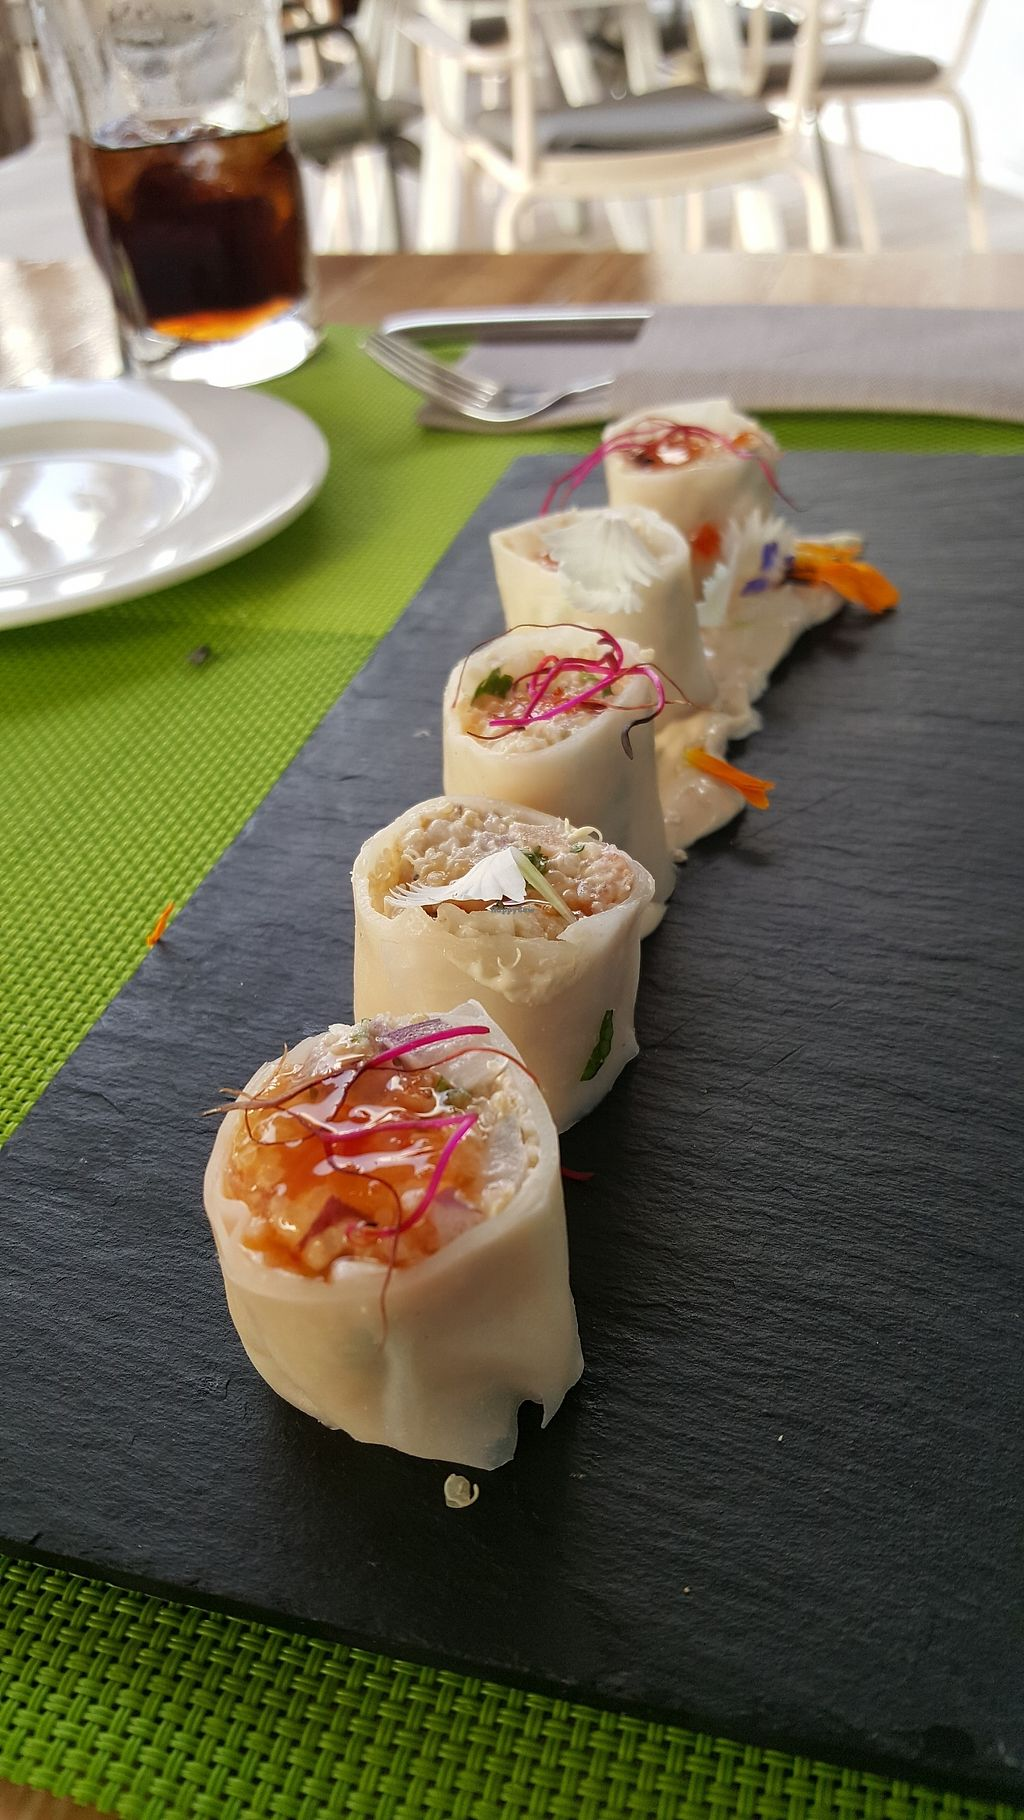 """Photo of Fuel RestoBar  by <a href=""""/members/profile/LisaNastasi"""">LisaNastasi</a> <br/>Vegan Quinoa Spring Rolls <br/> June 29, 2017  - <a href='/contact/abuse/image/91617/274892'>Report</a>"""